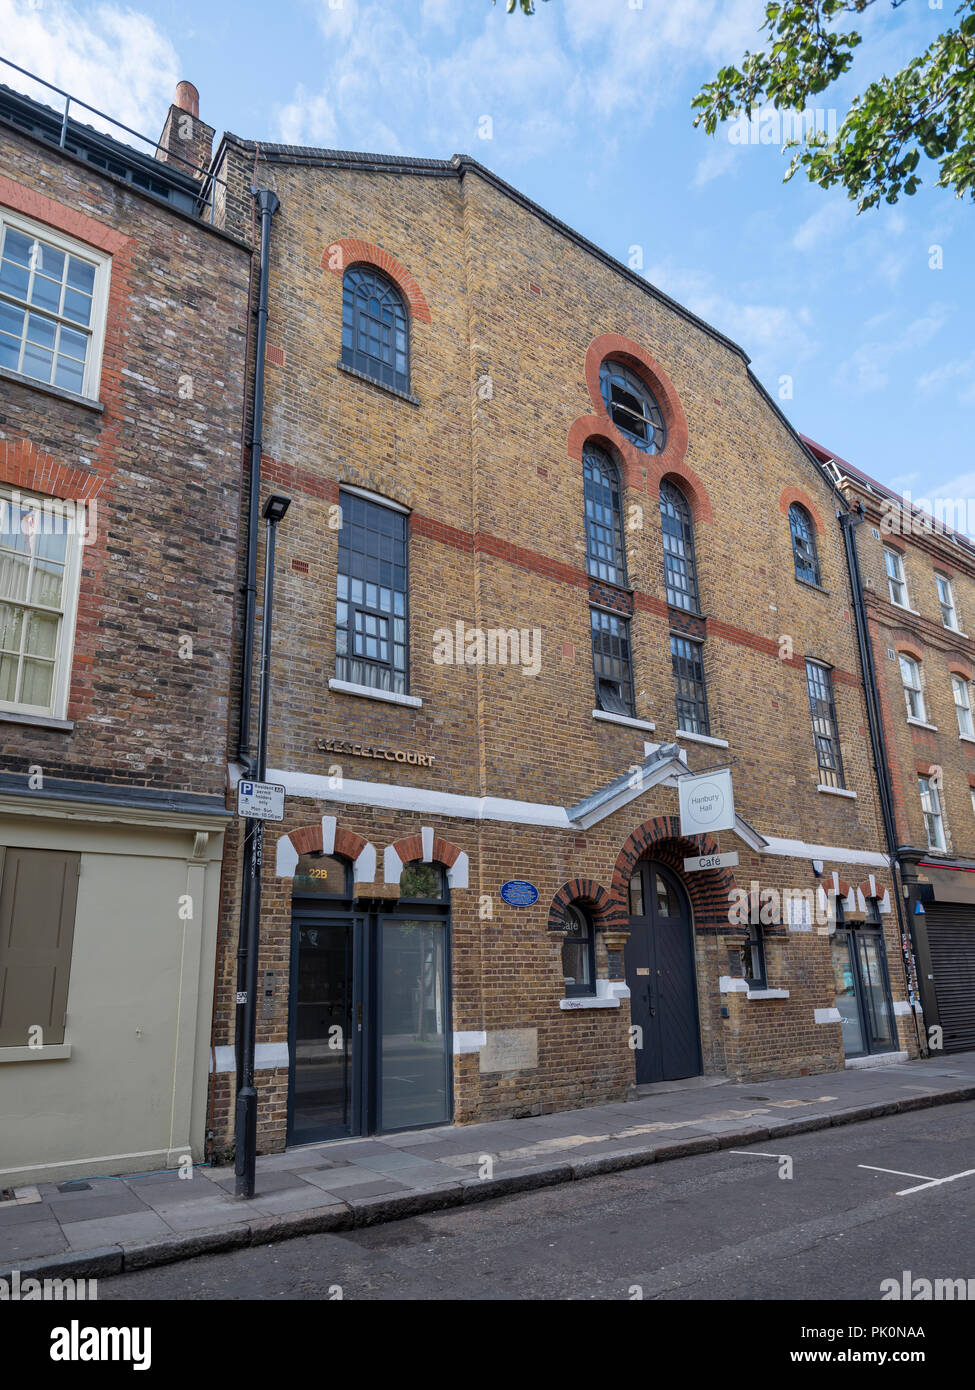 Hanbury Hall, a former Huguenot chapel in Hanbury Street, Spitalfields, now owned by Christ Church famous for Dickens and Match Girl strike - Stock Image